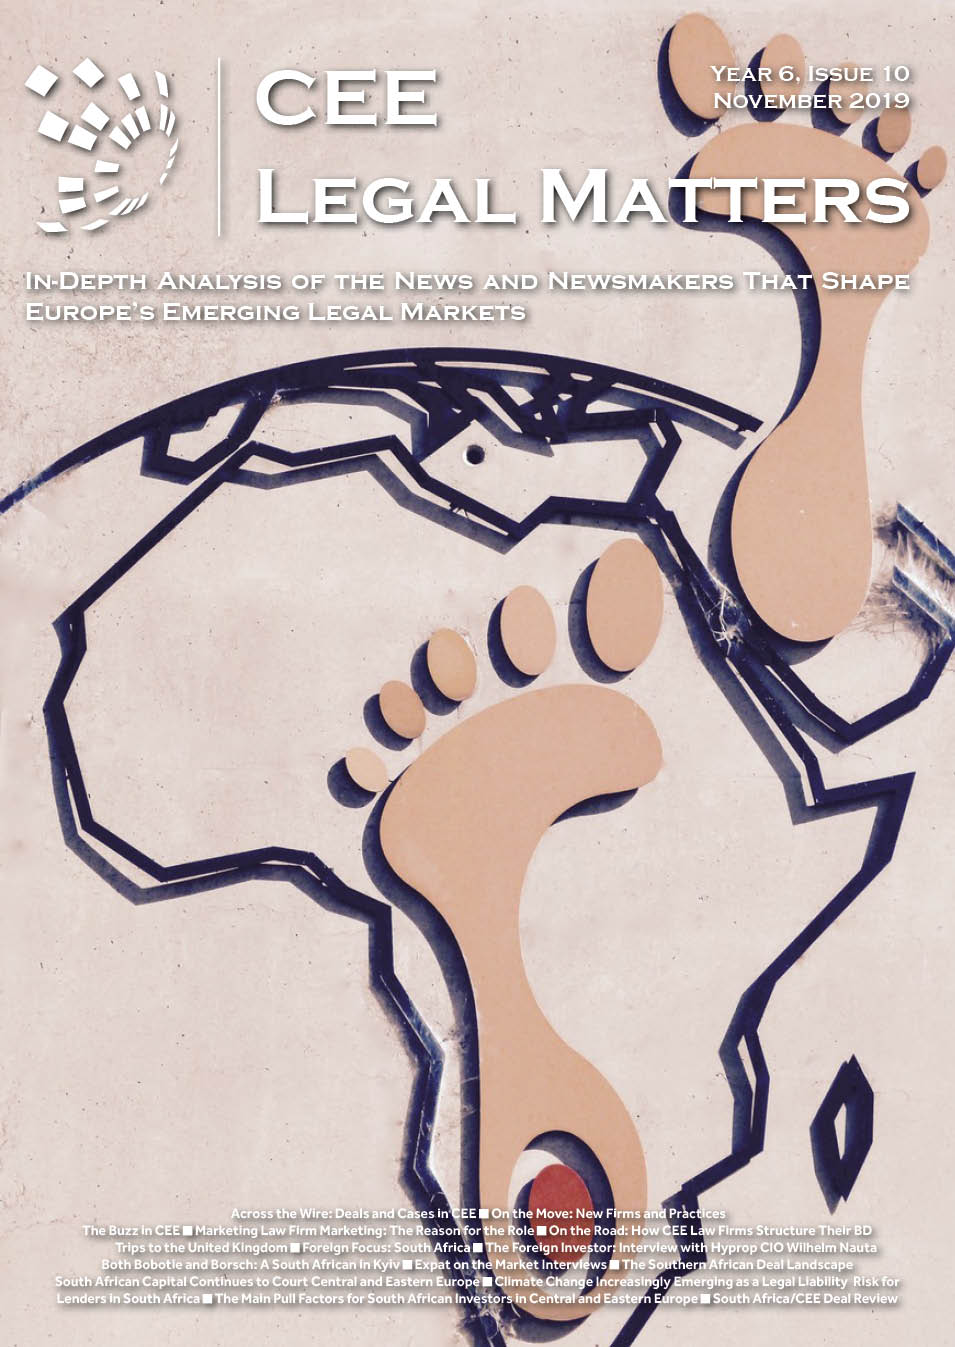 CEE Legal Matters: Issue 6.10